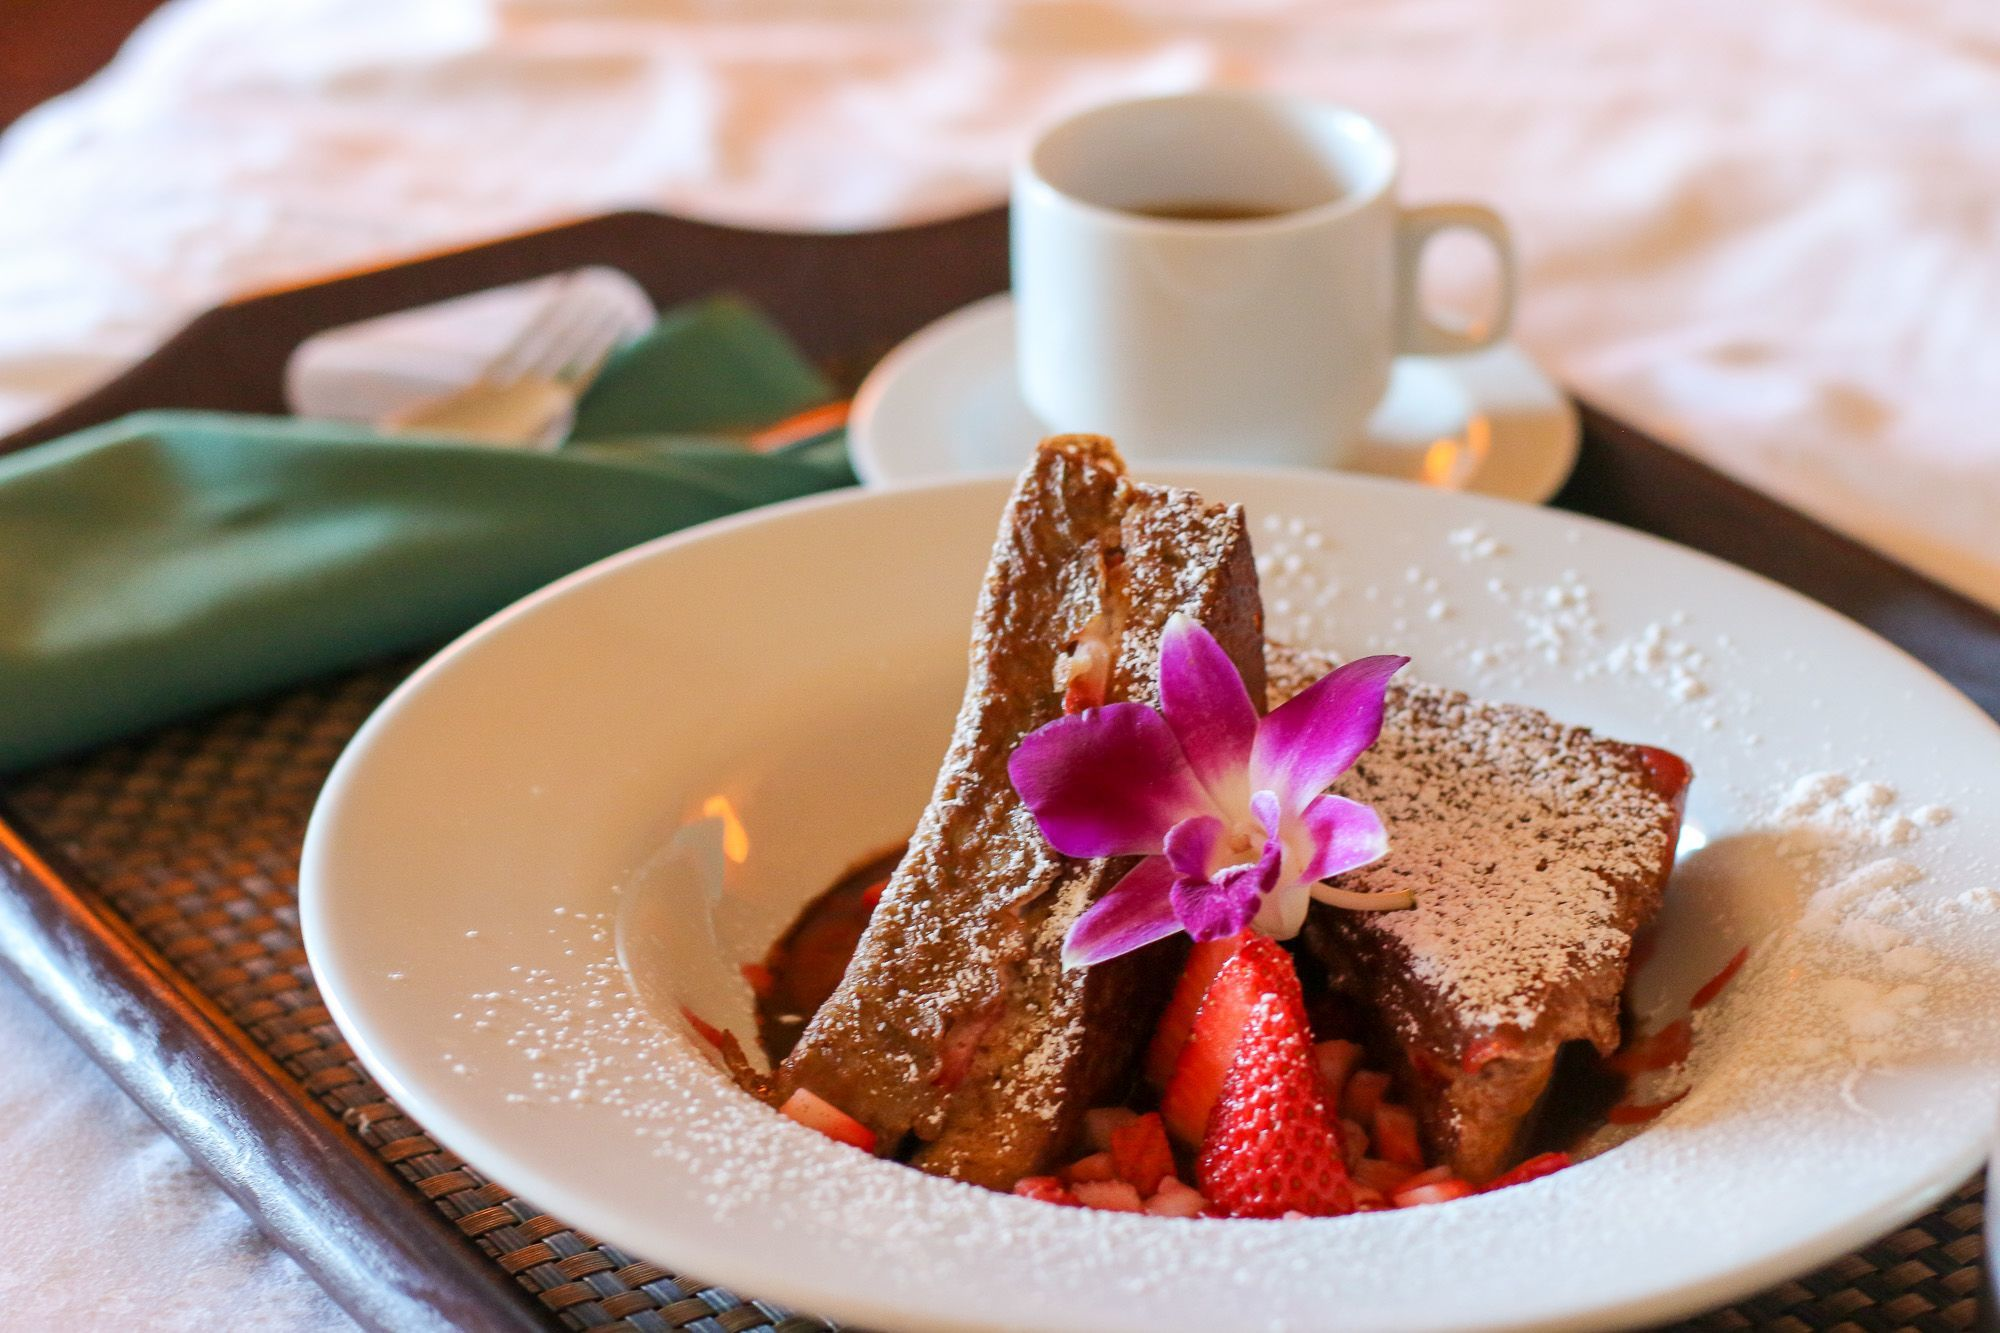 Breakfast in bed is one way to pamper Mom at Disney Aulani in Hawaii.